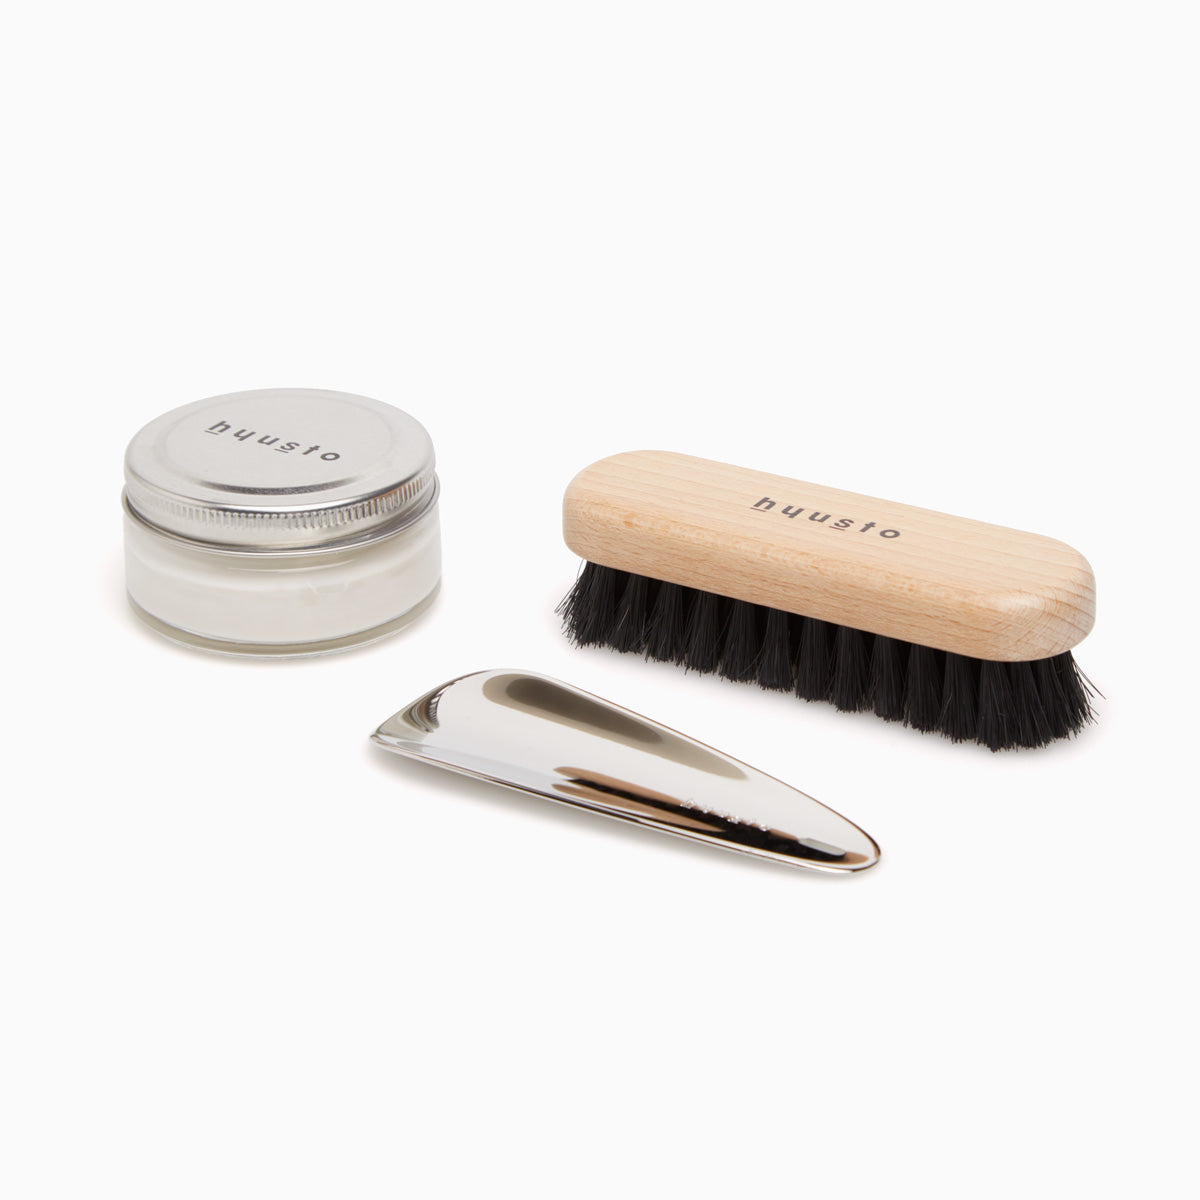 Hyusto Maintenance and care set with silver shoe horn, brush and neutro shoe cream